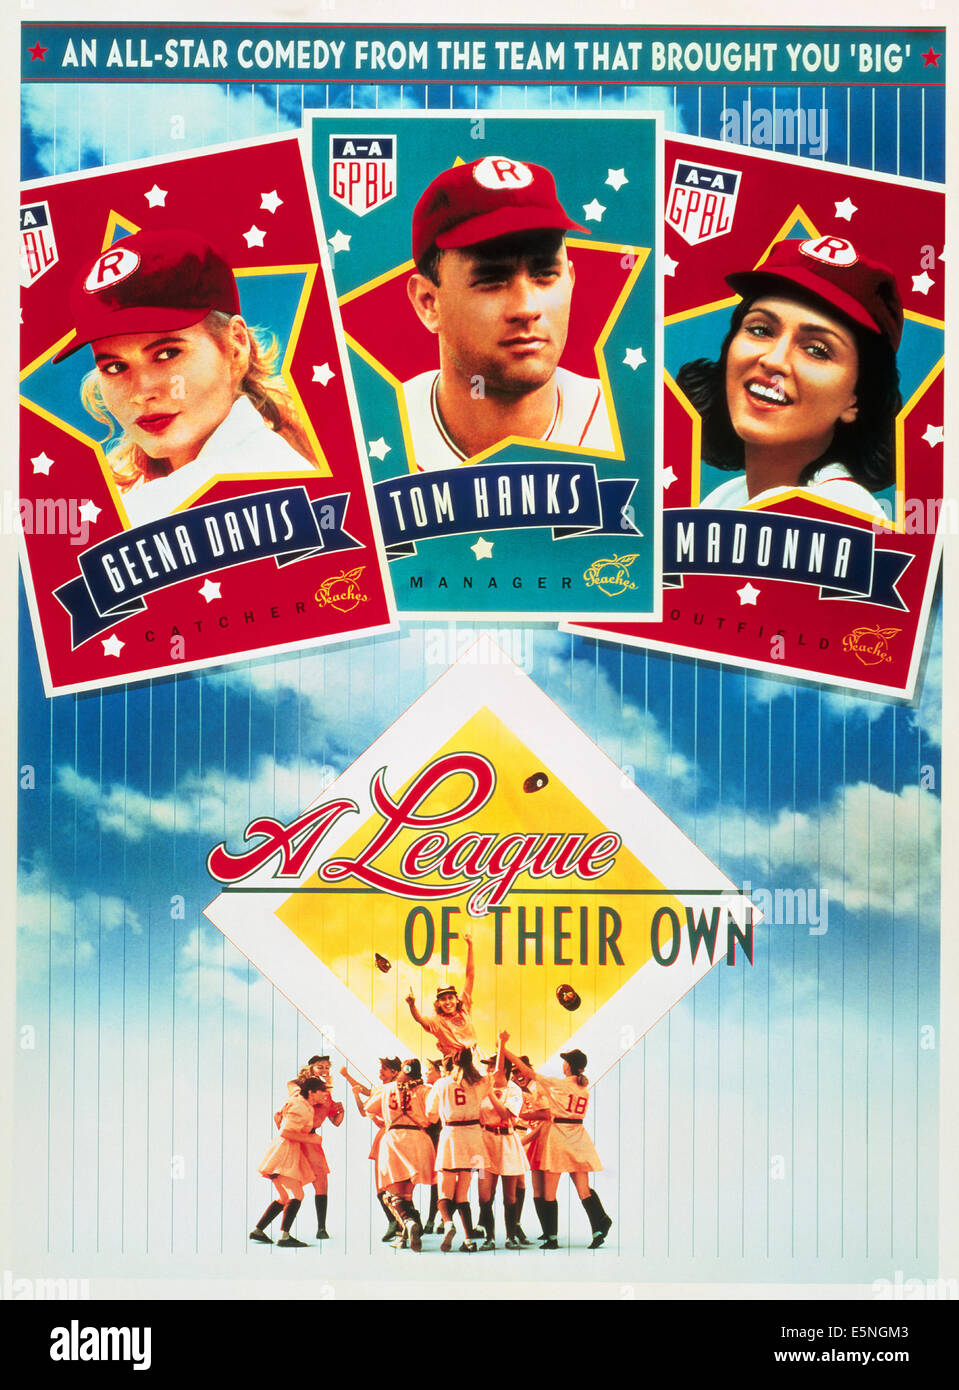 Image result for a league of their own movie poster